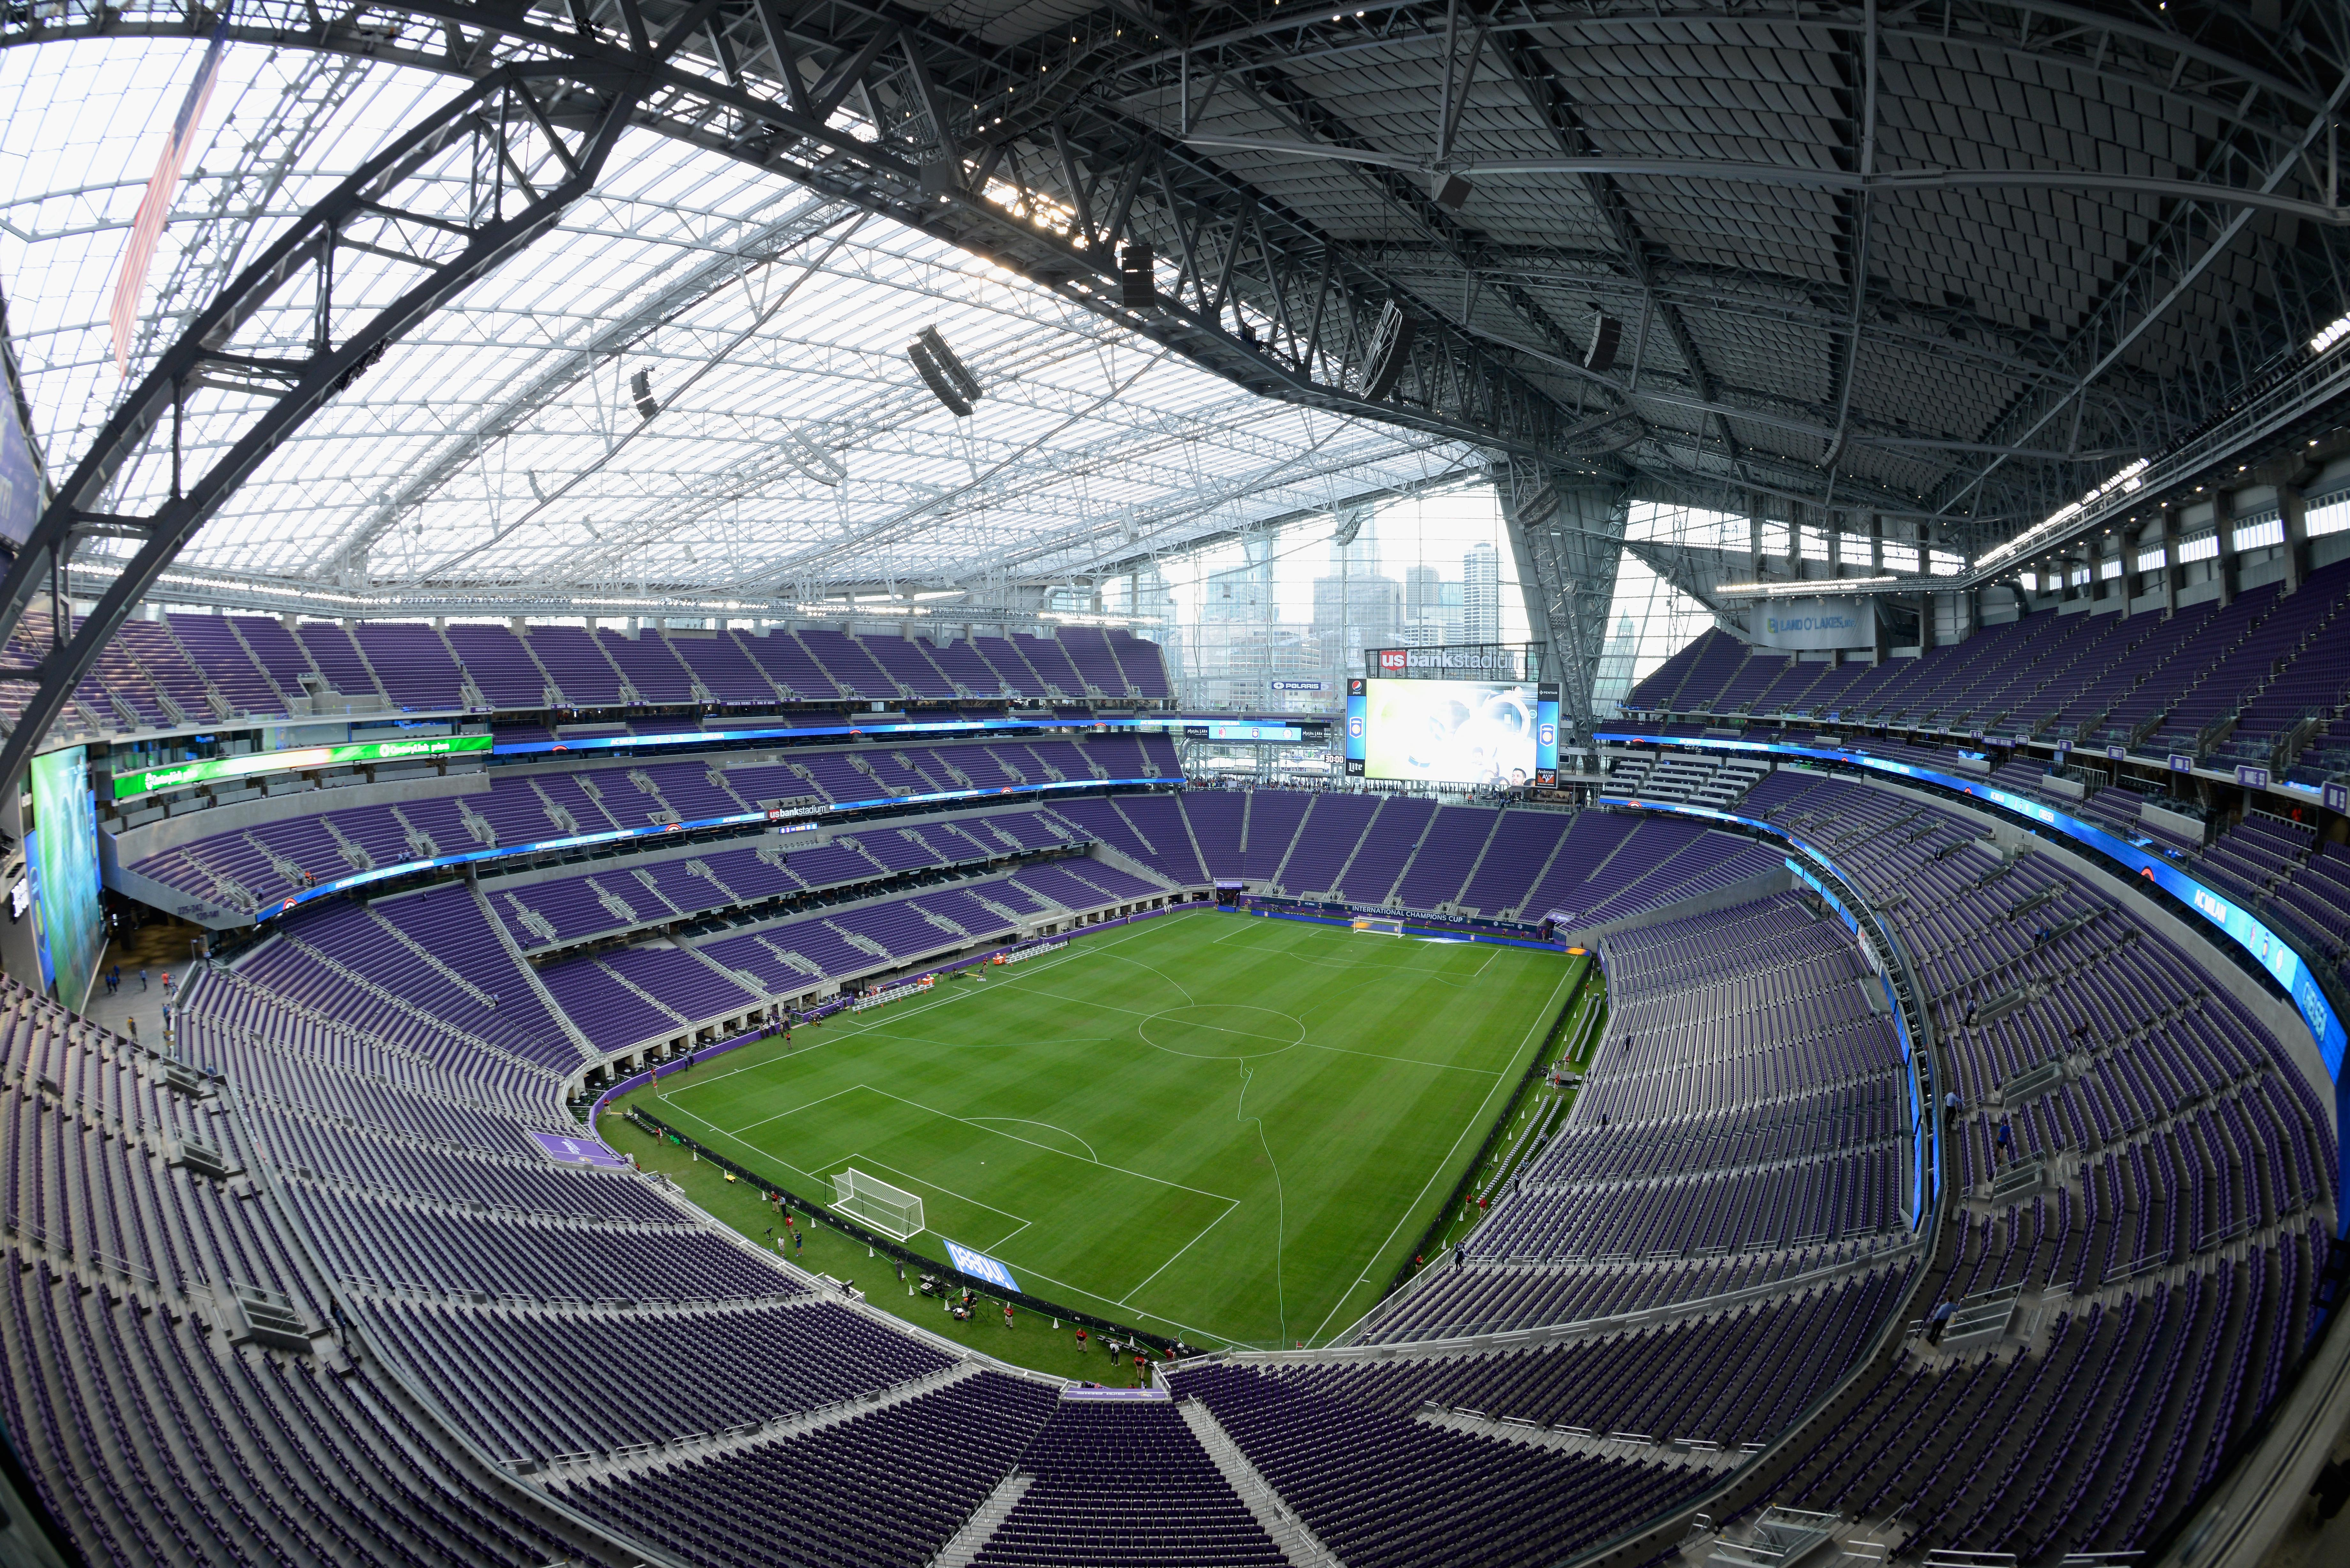 MINNEAPOLIS, MN - AUGUST 3: A general view of U.S. Bank Stadium before the International Champions Cup match between AC Milan v Chelsea on August 3, 2016 in Minneapolis, Minnesota. (Photo by Hannah Foslien/Getty Images)